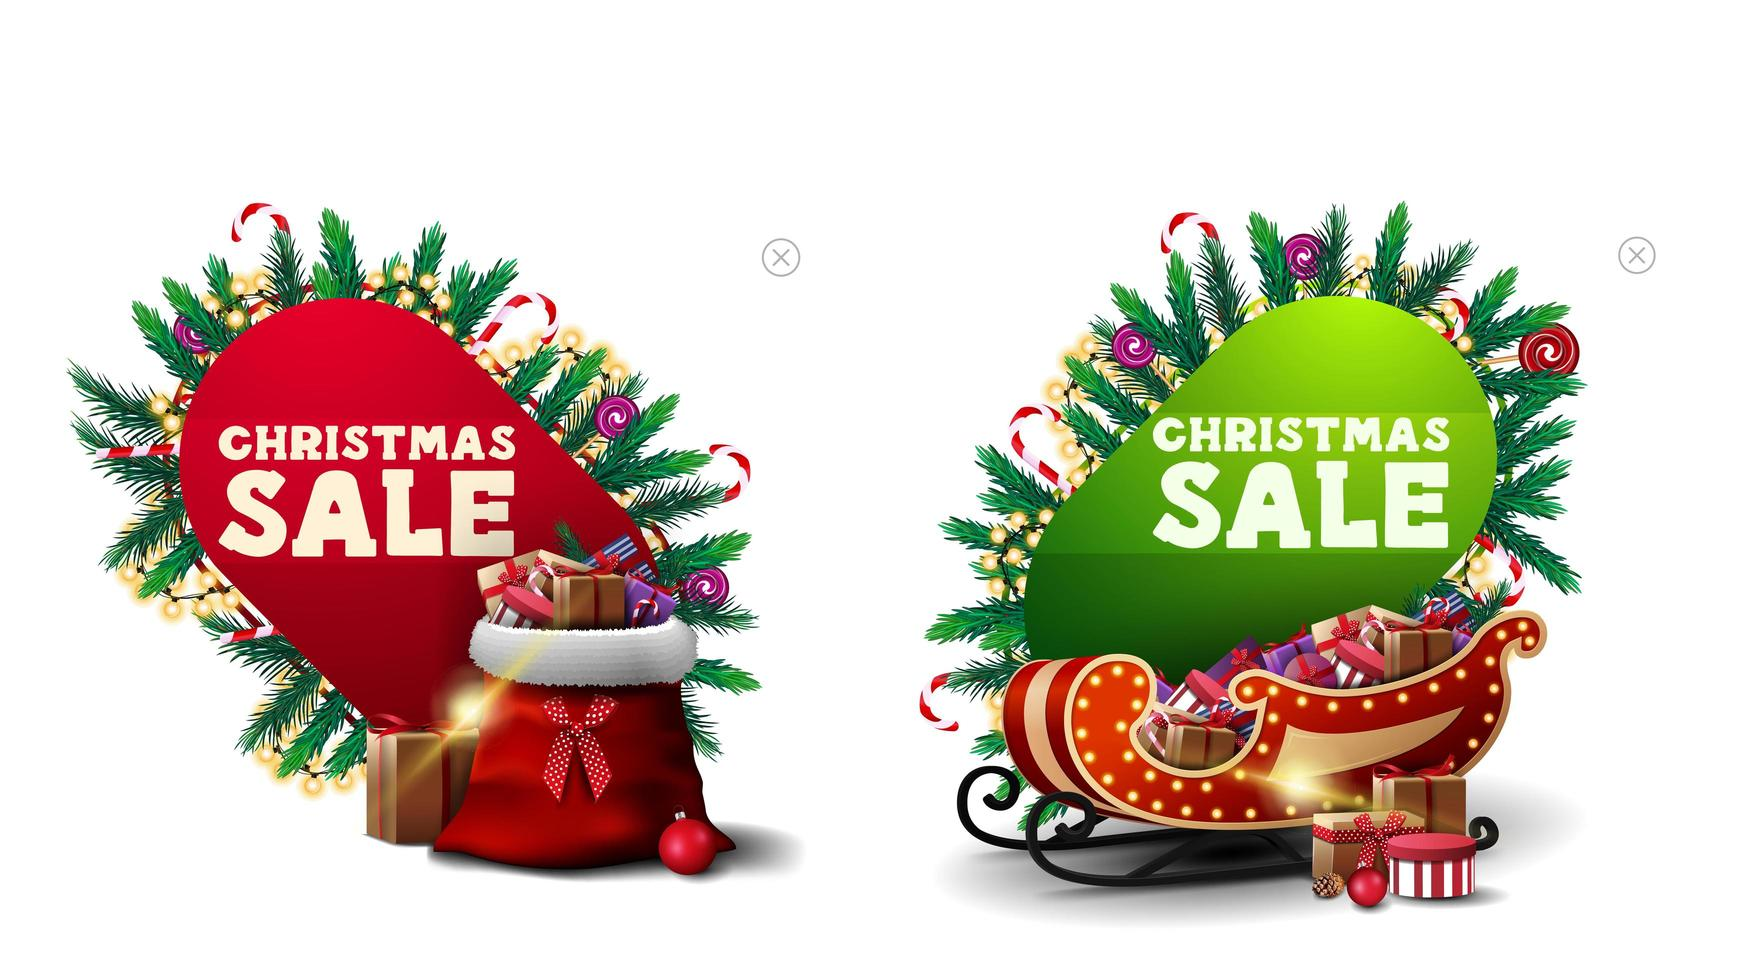 Christmas sale, red and green discount banners in abstract forms decorated with Christmas elements, Santa sleigh and Santa bag vector